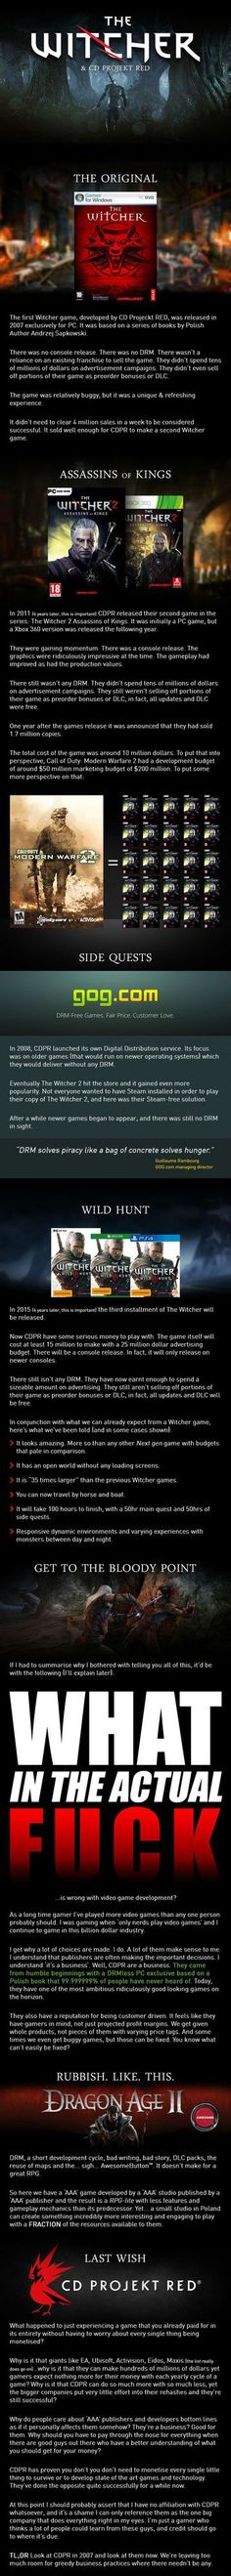 The Witcher & CD PROJEKT RED